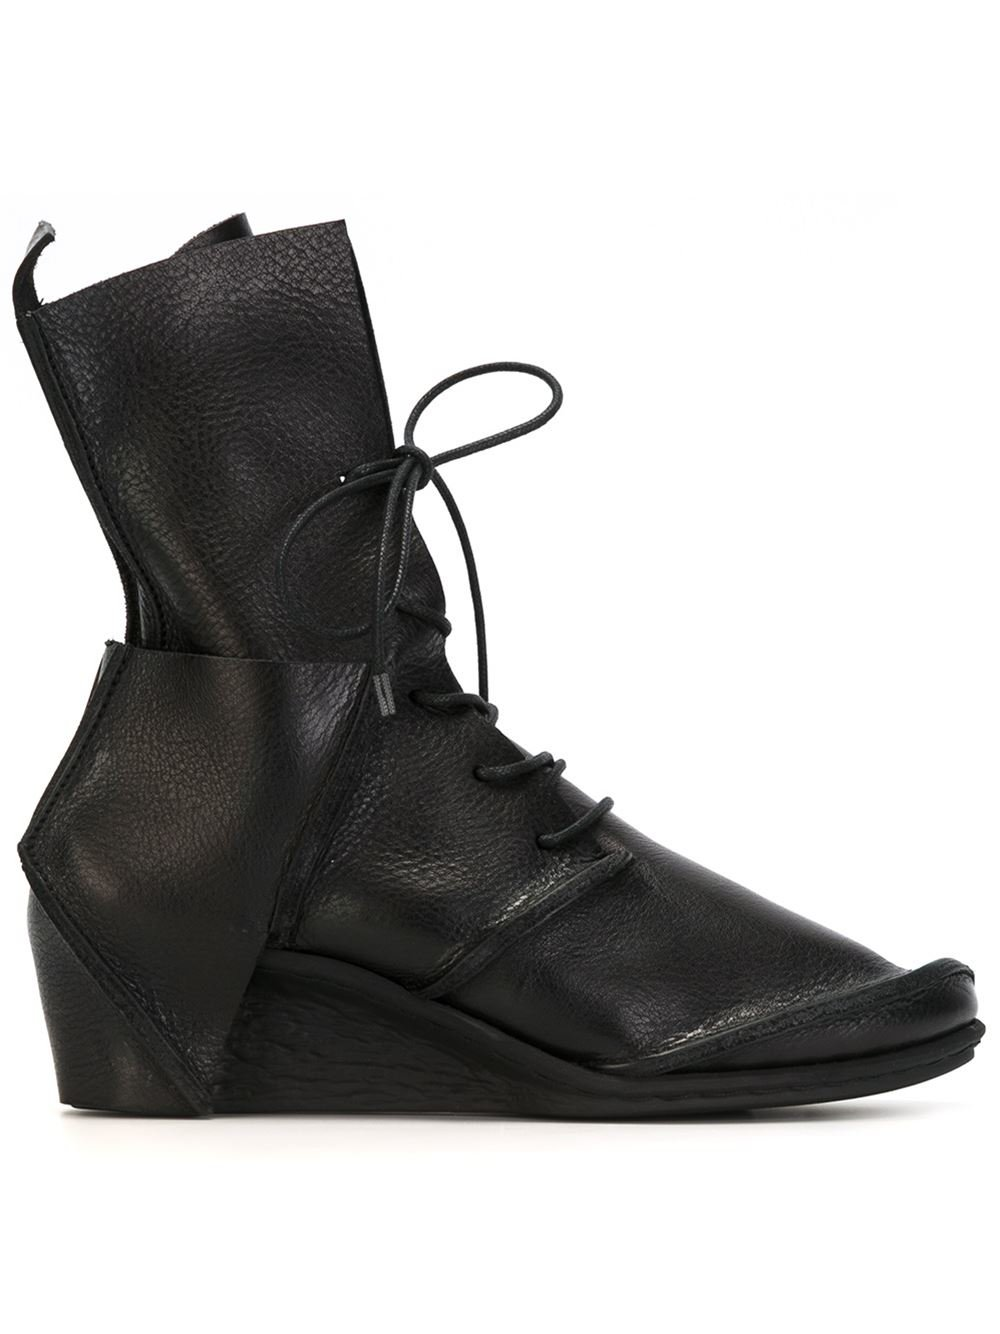 trippen lace up wedge boots in black lyst